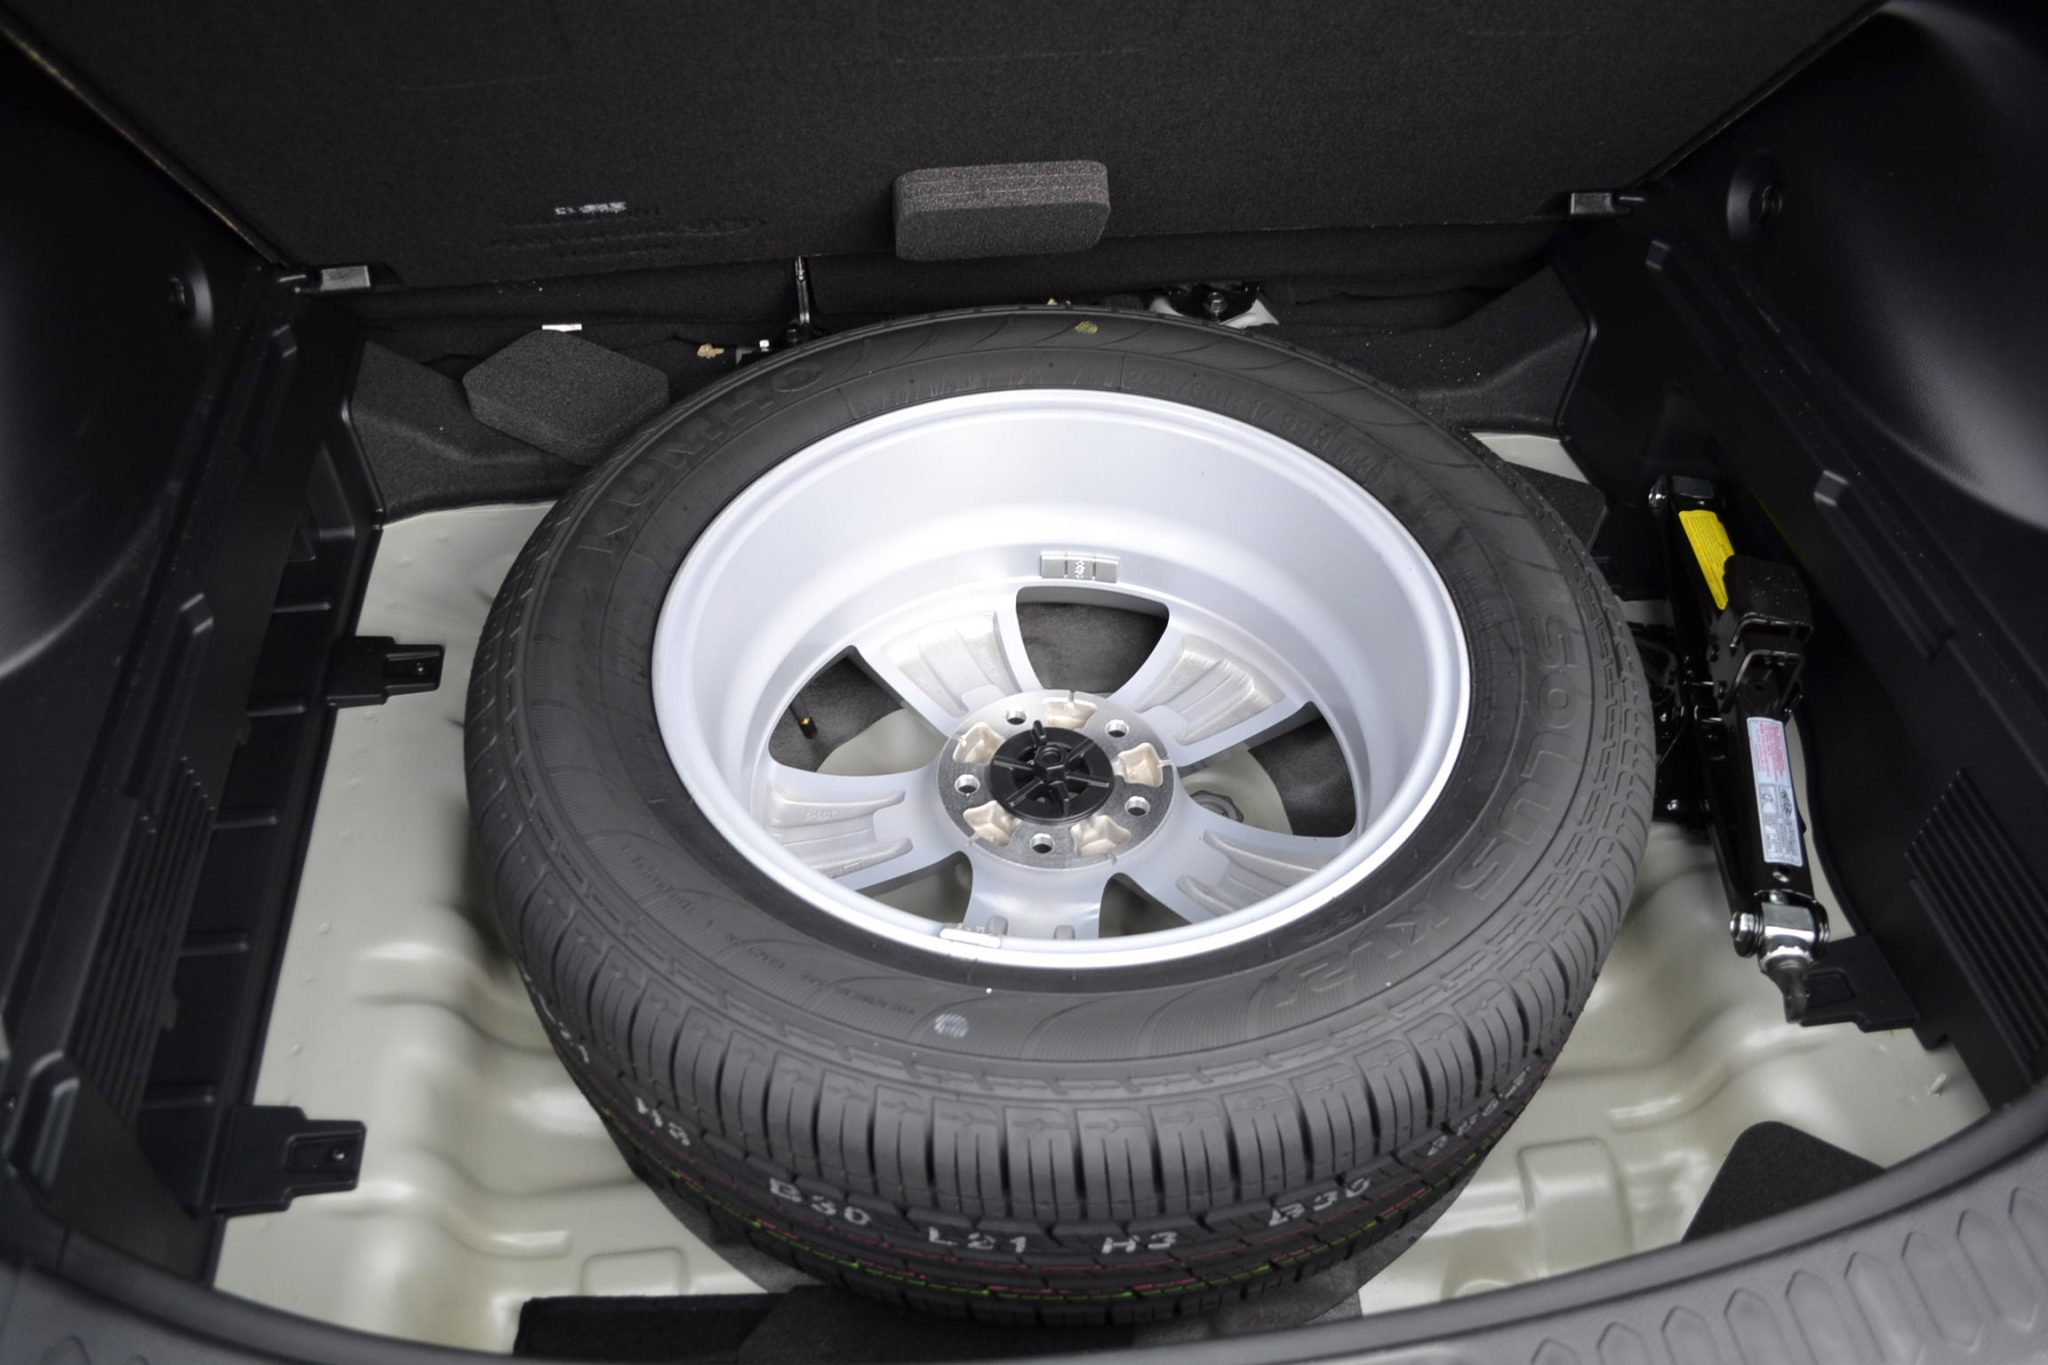 Kia Sportage Review 2012 Sli Diesel Automatic Spare Tire Forcegt Com